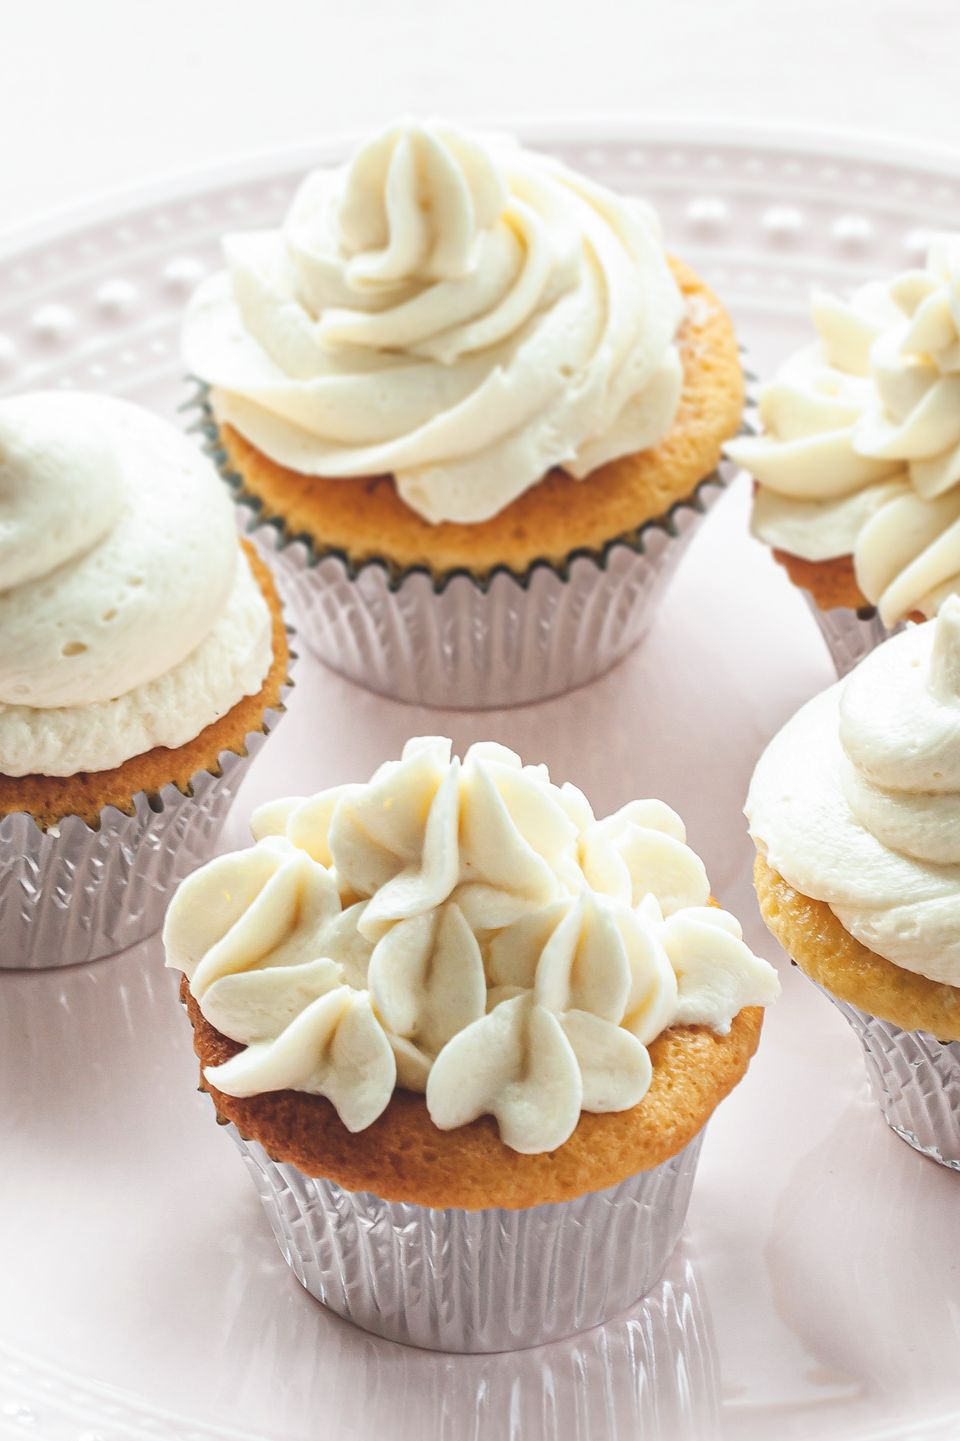 Vanilla Ermine Frosting piped on cupcakes.